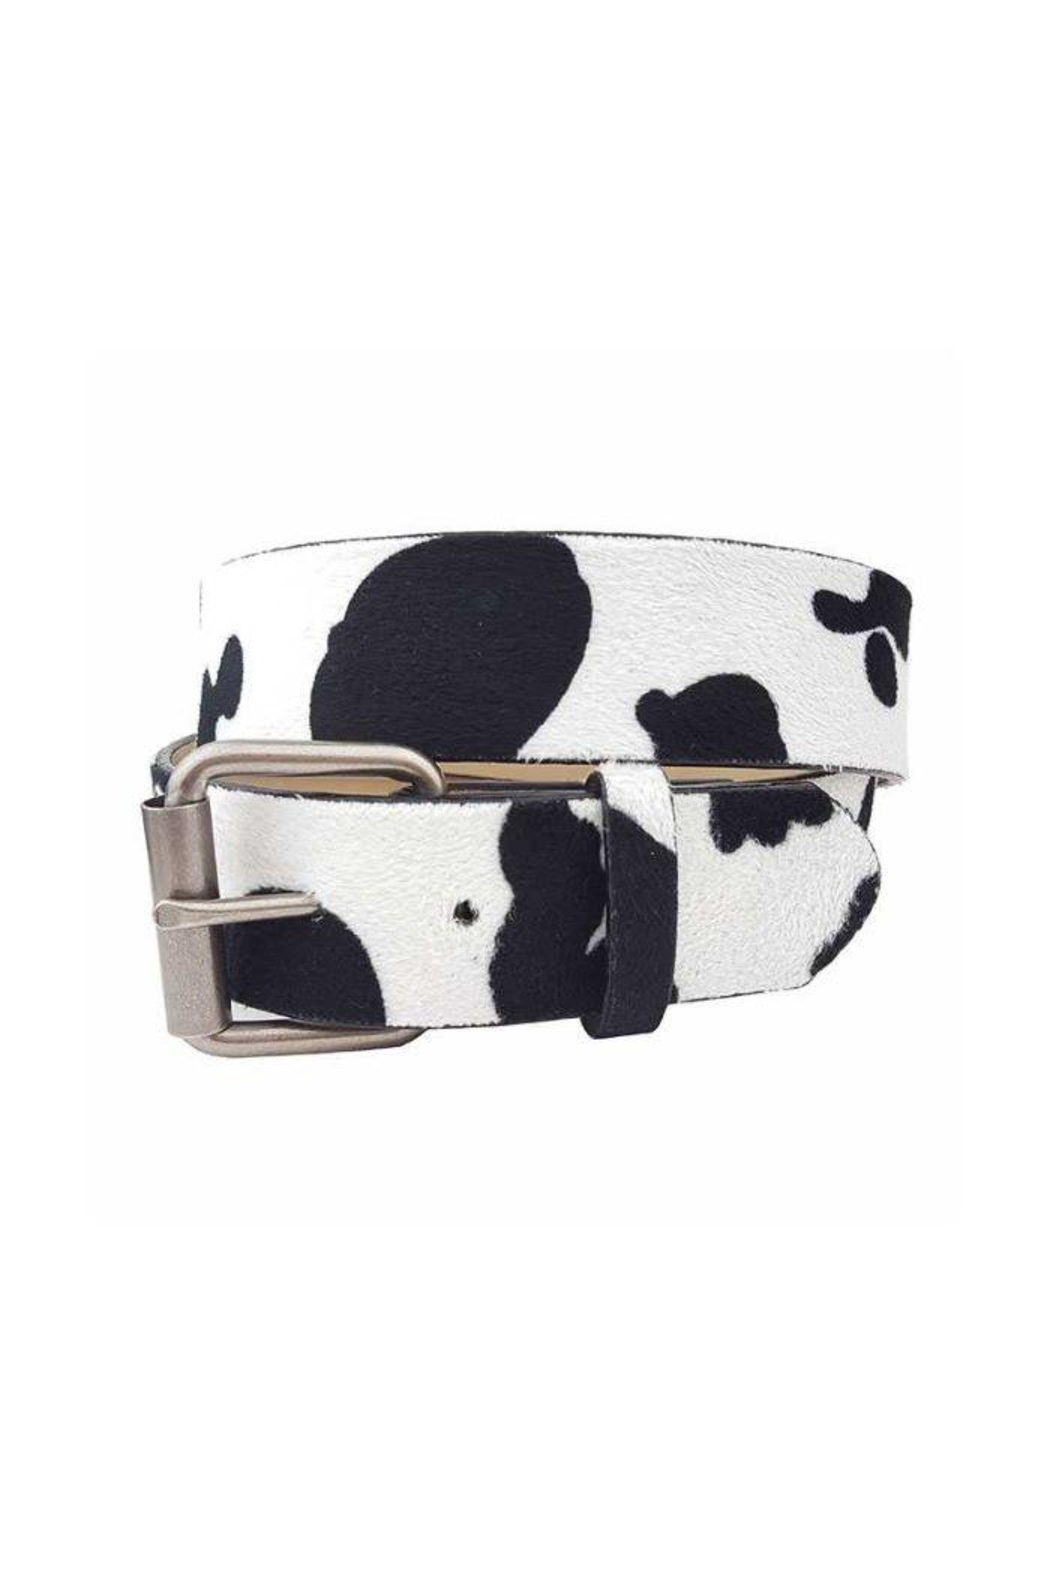 JOIA TRADING INC Cow Print Jean Belt - Main Image